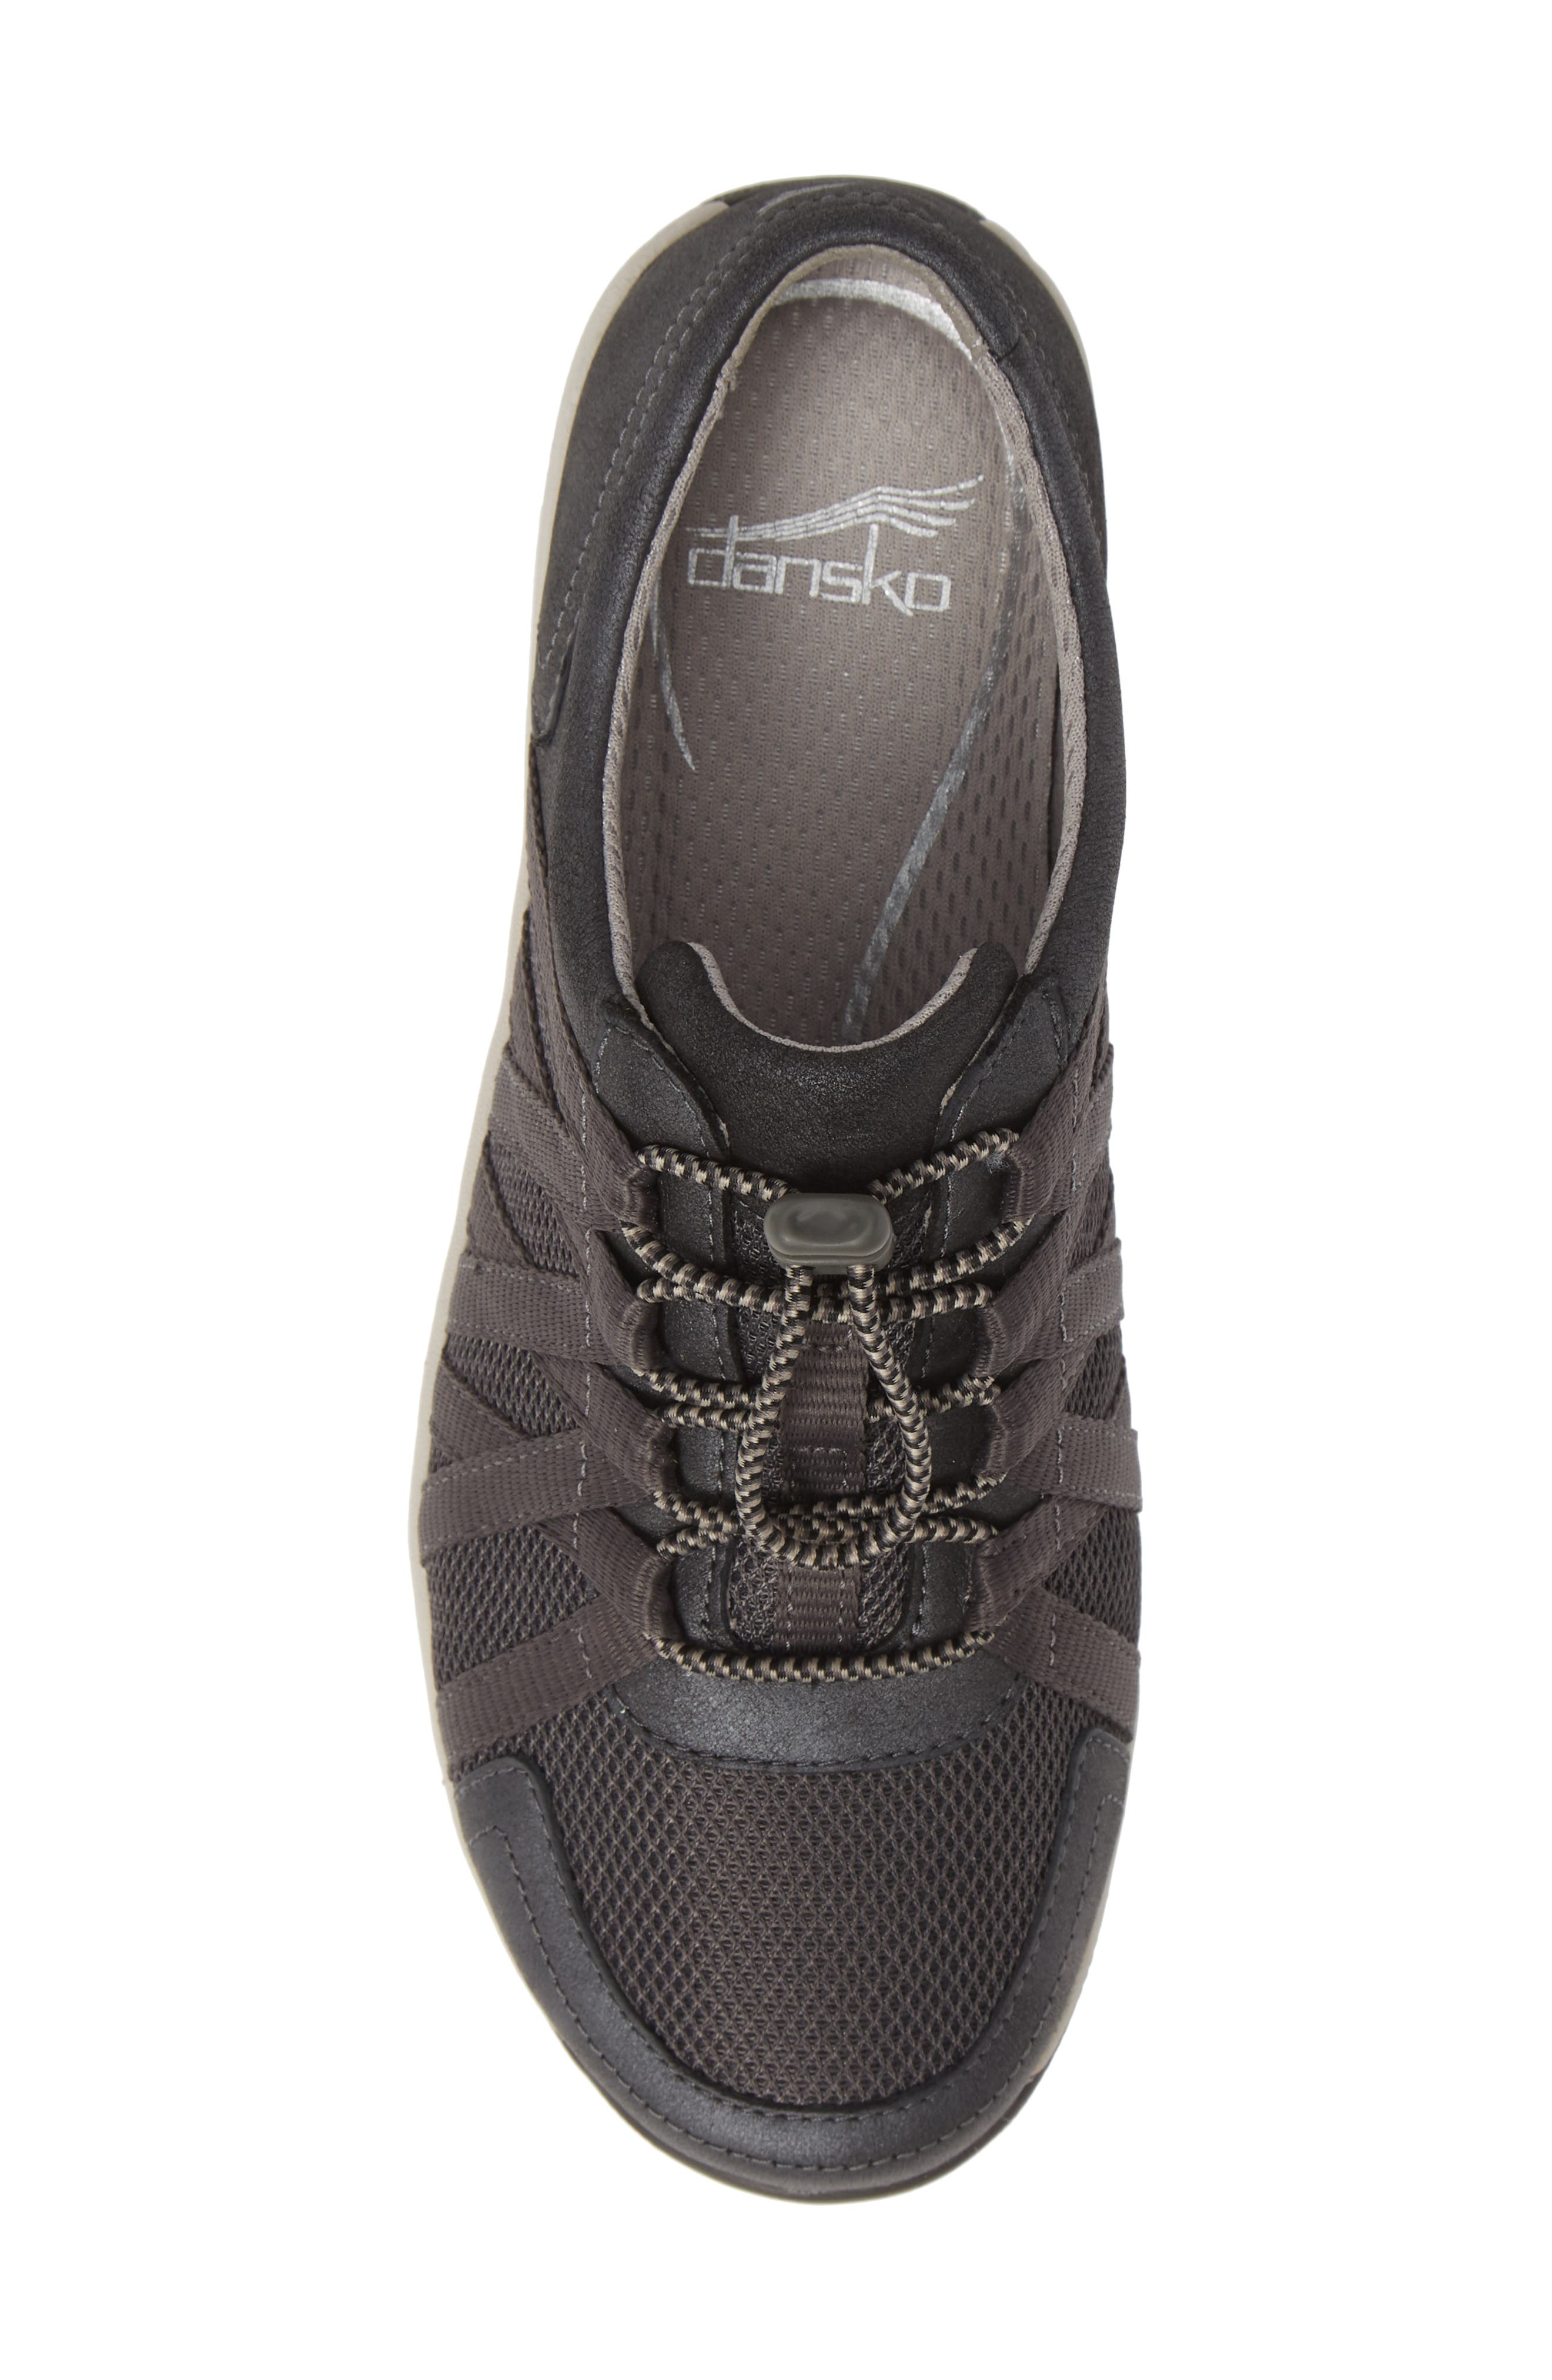 Halifax Collection Honor Sneaker,                             Alternate thumbnail 5, color,                             CHARCOAL/ CHARCOAL SUEDE